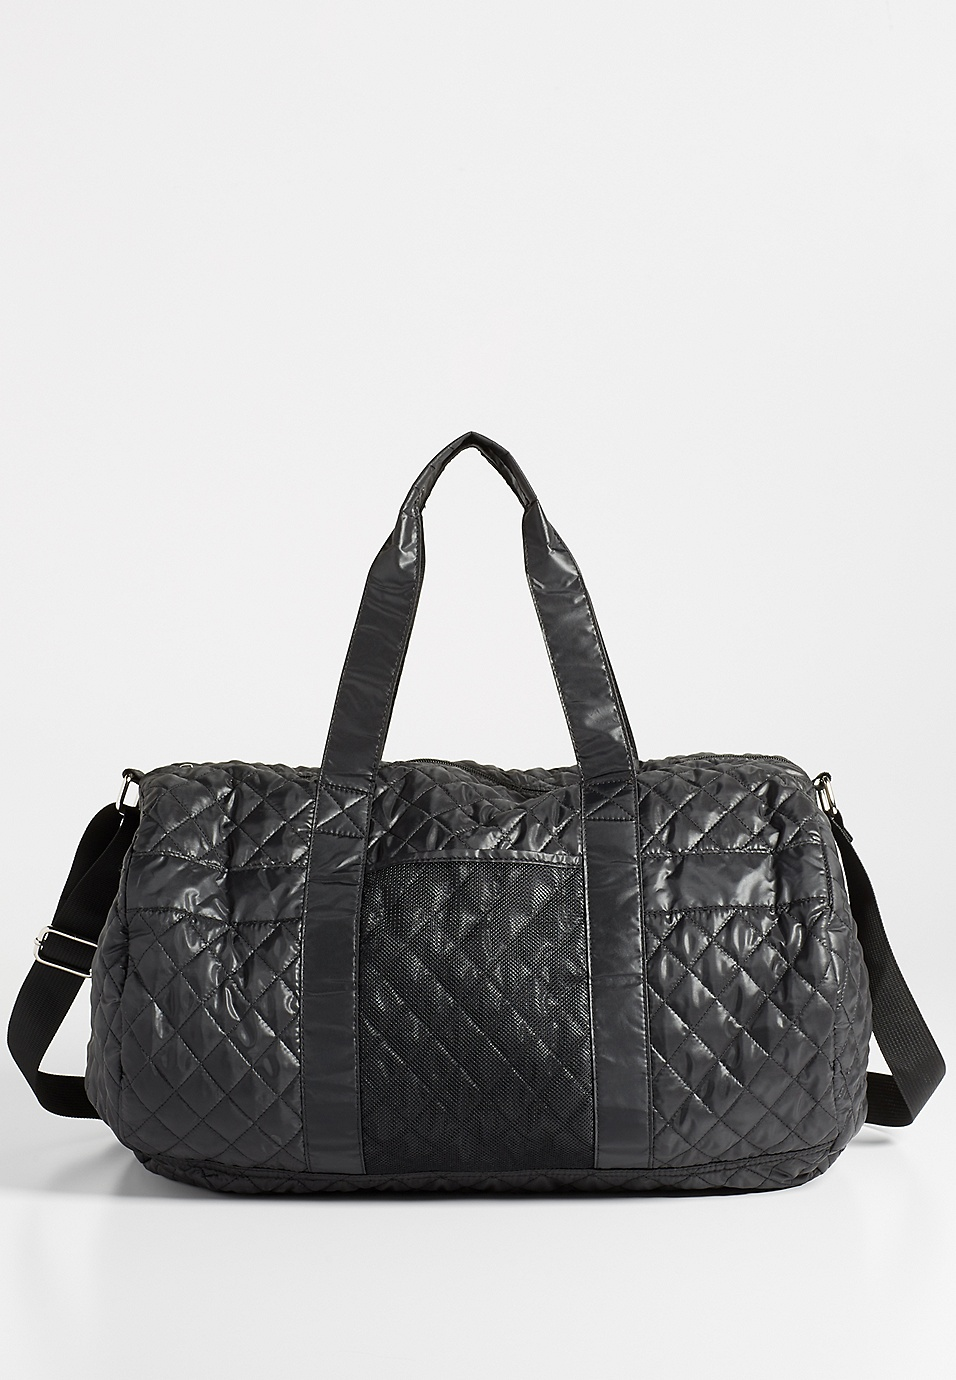 aeb6b3bf21aa large quilted duffle bag